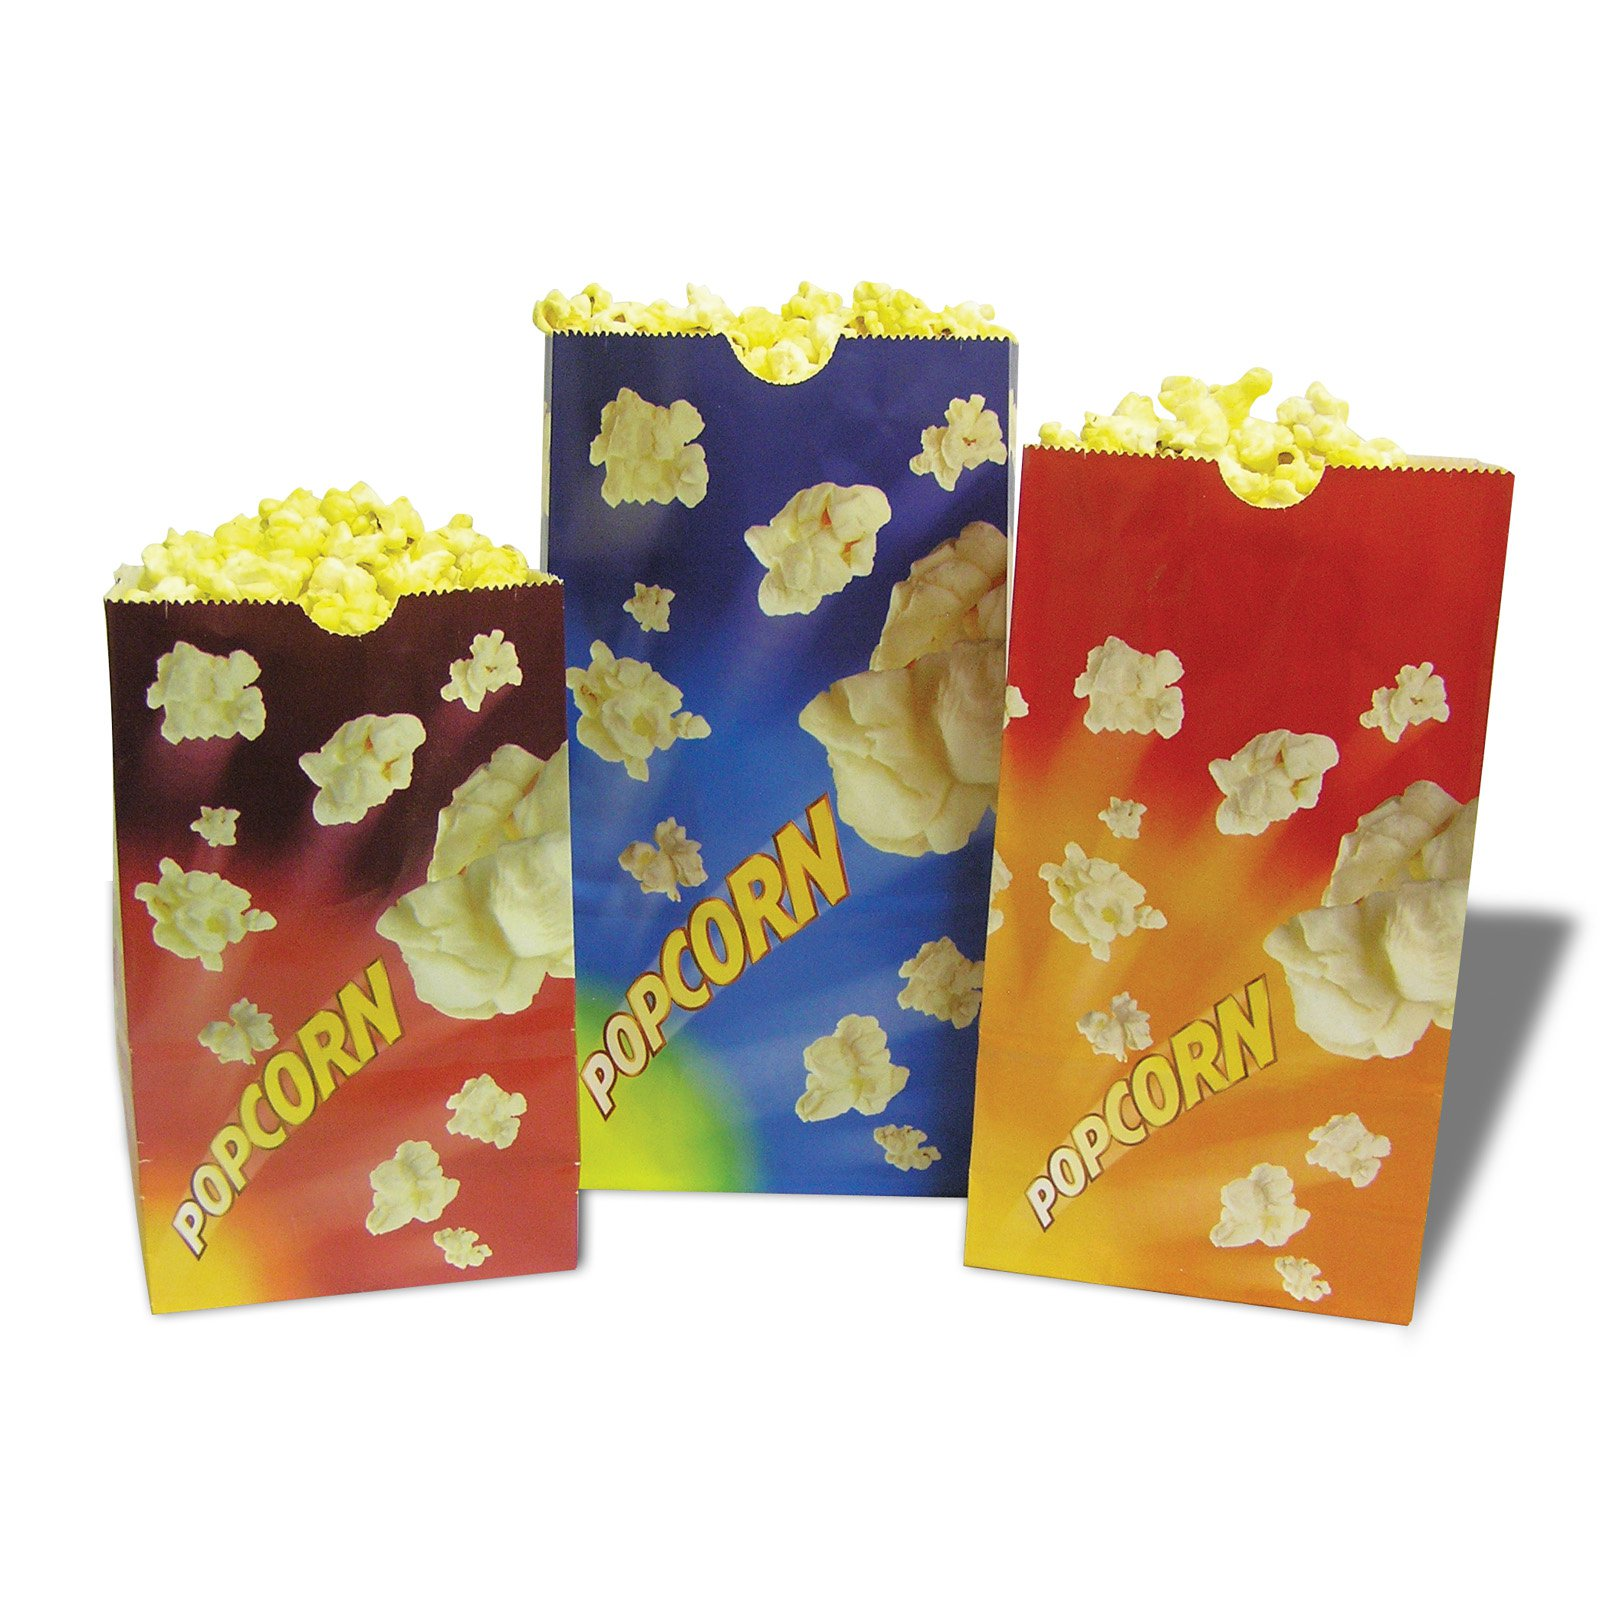 Benchmark USA Popcorn Butter Bags